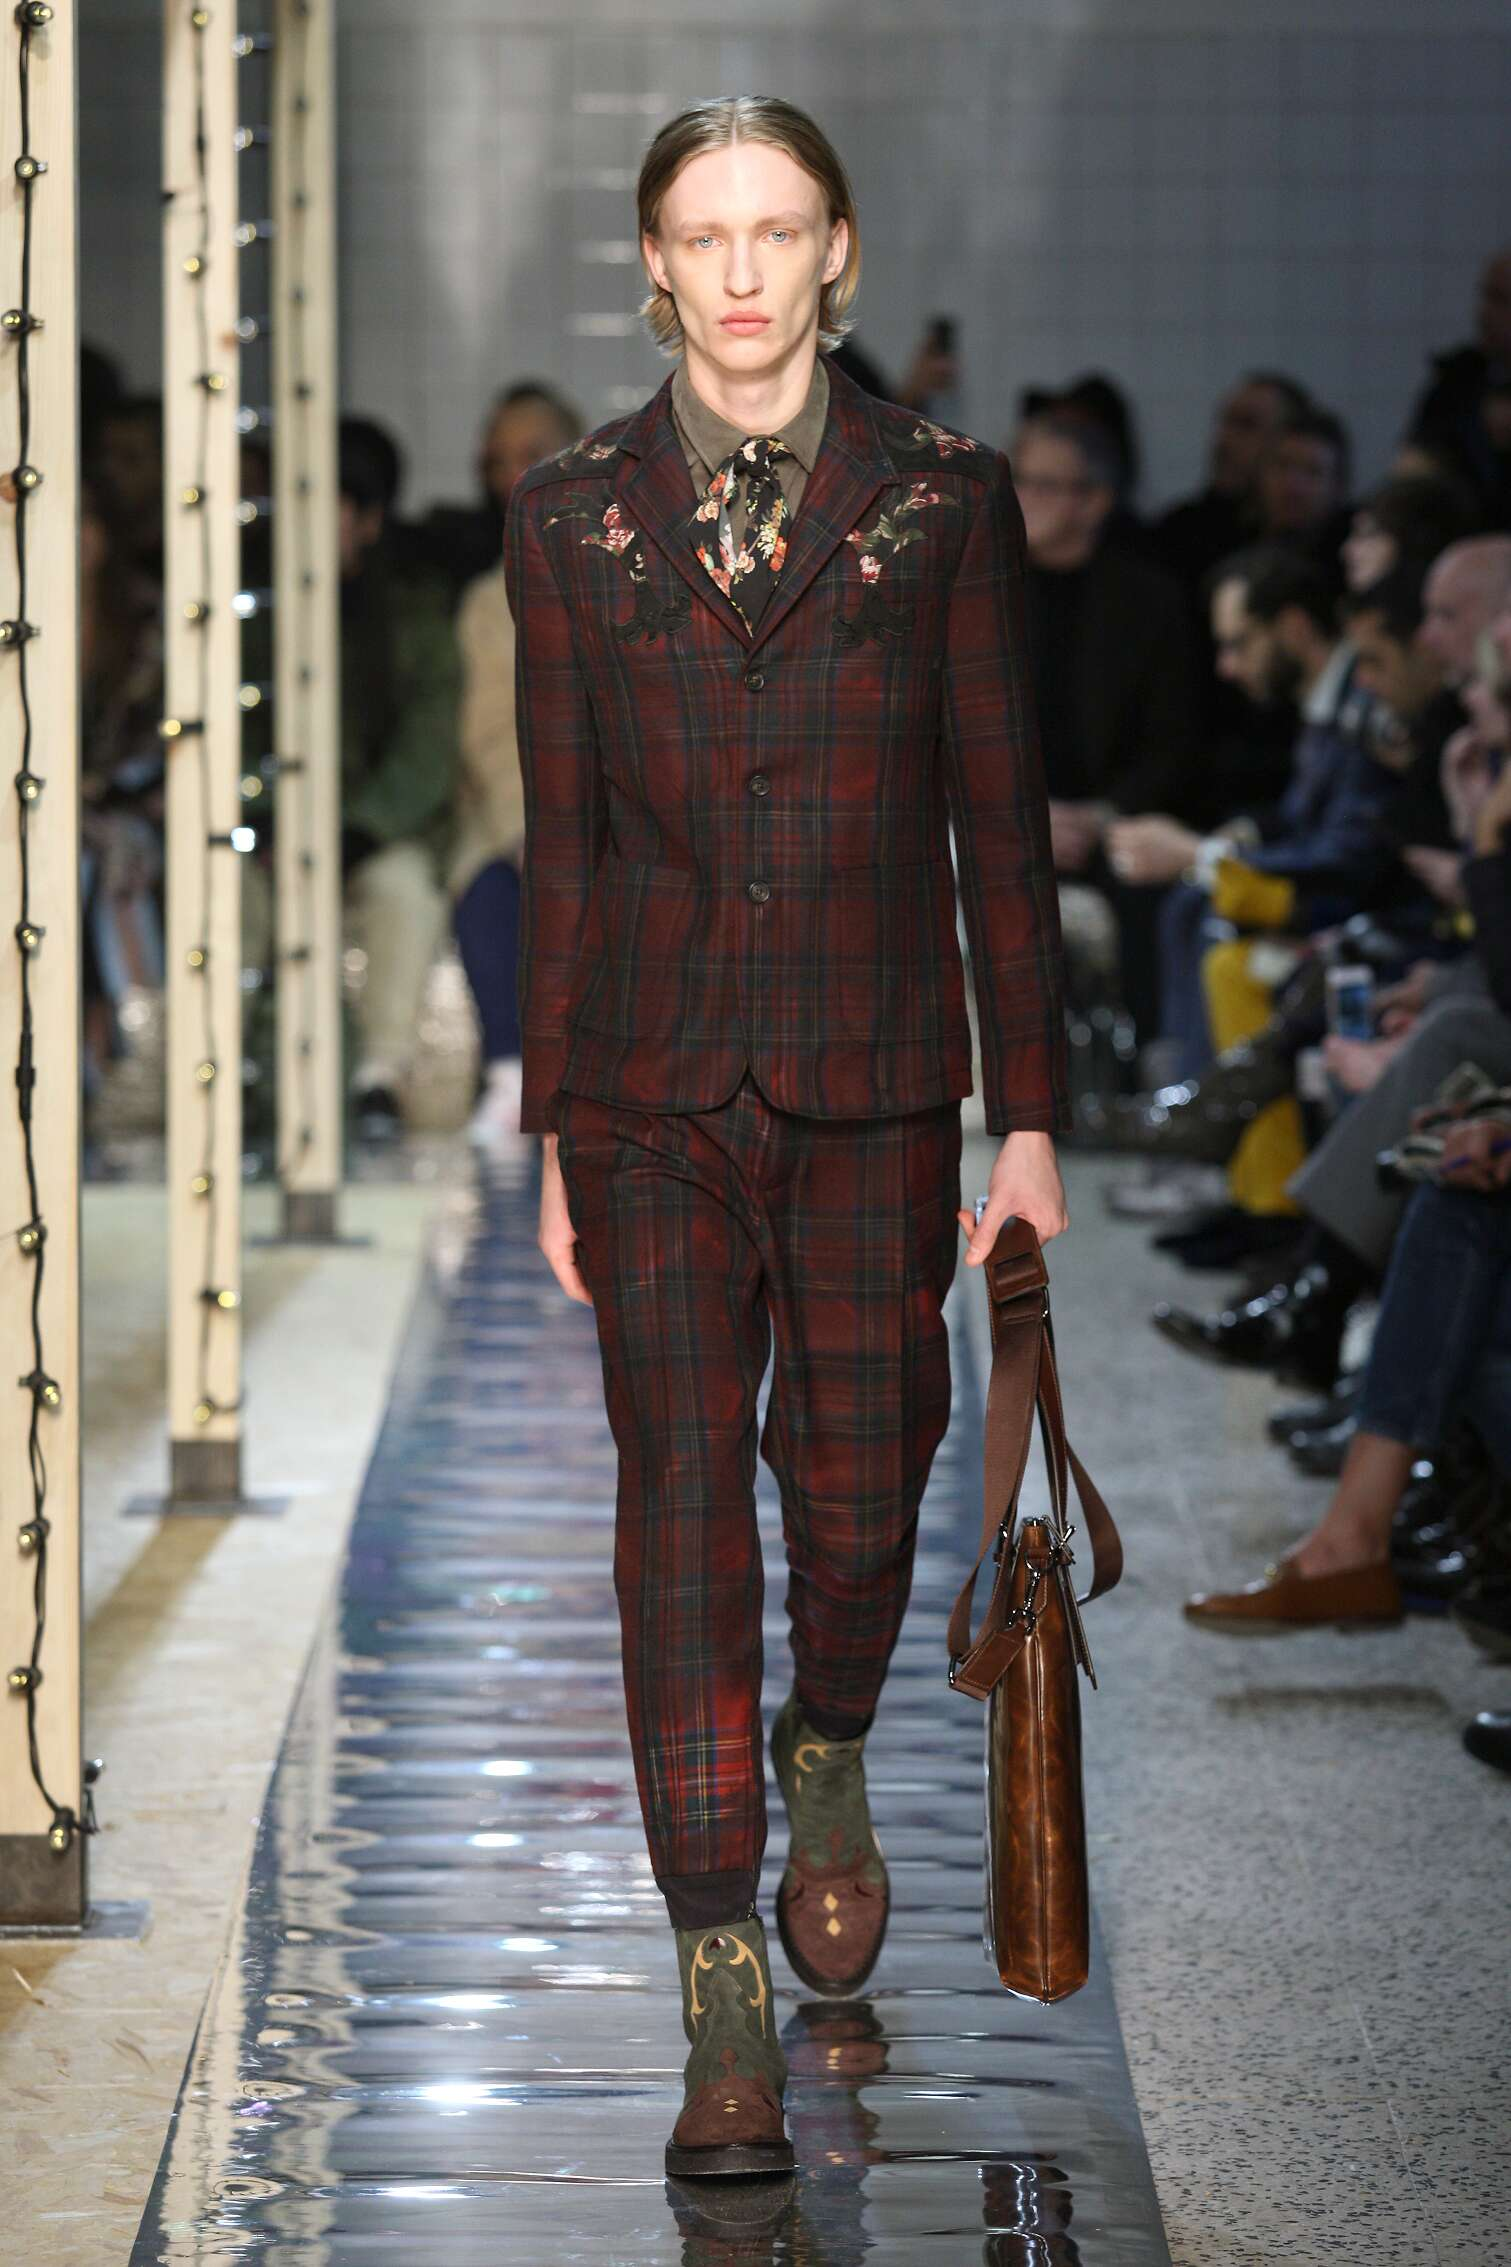 2016 Catwalk Antonio Marras Man Fashion Show Winter